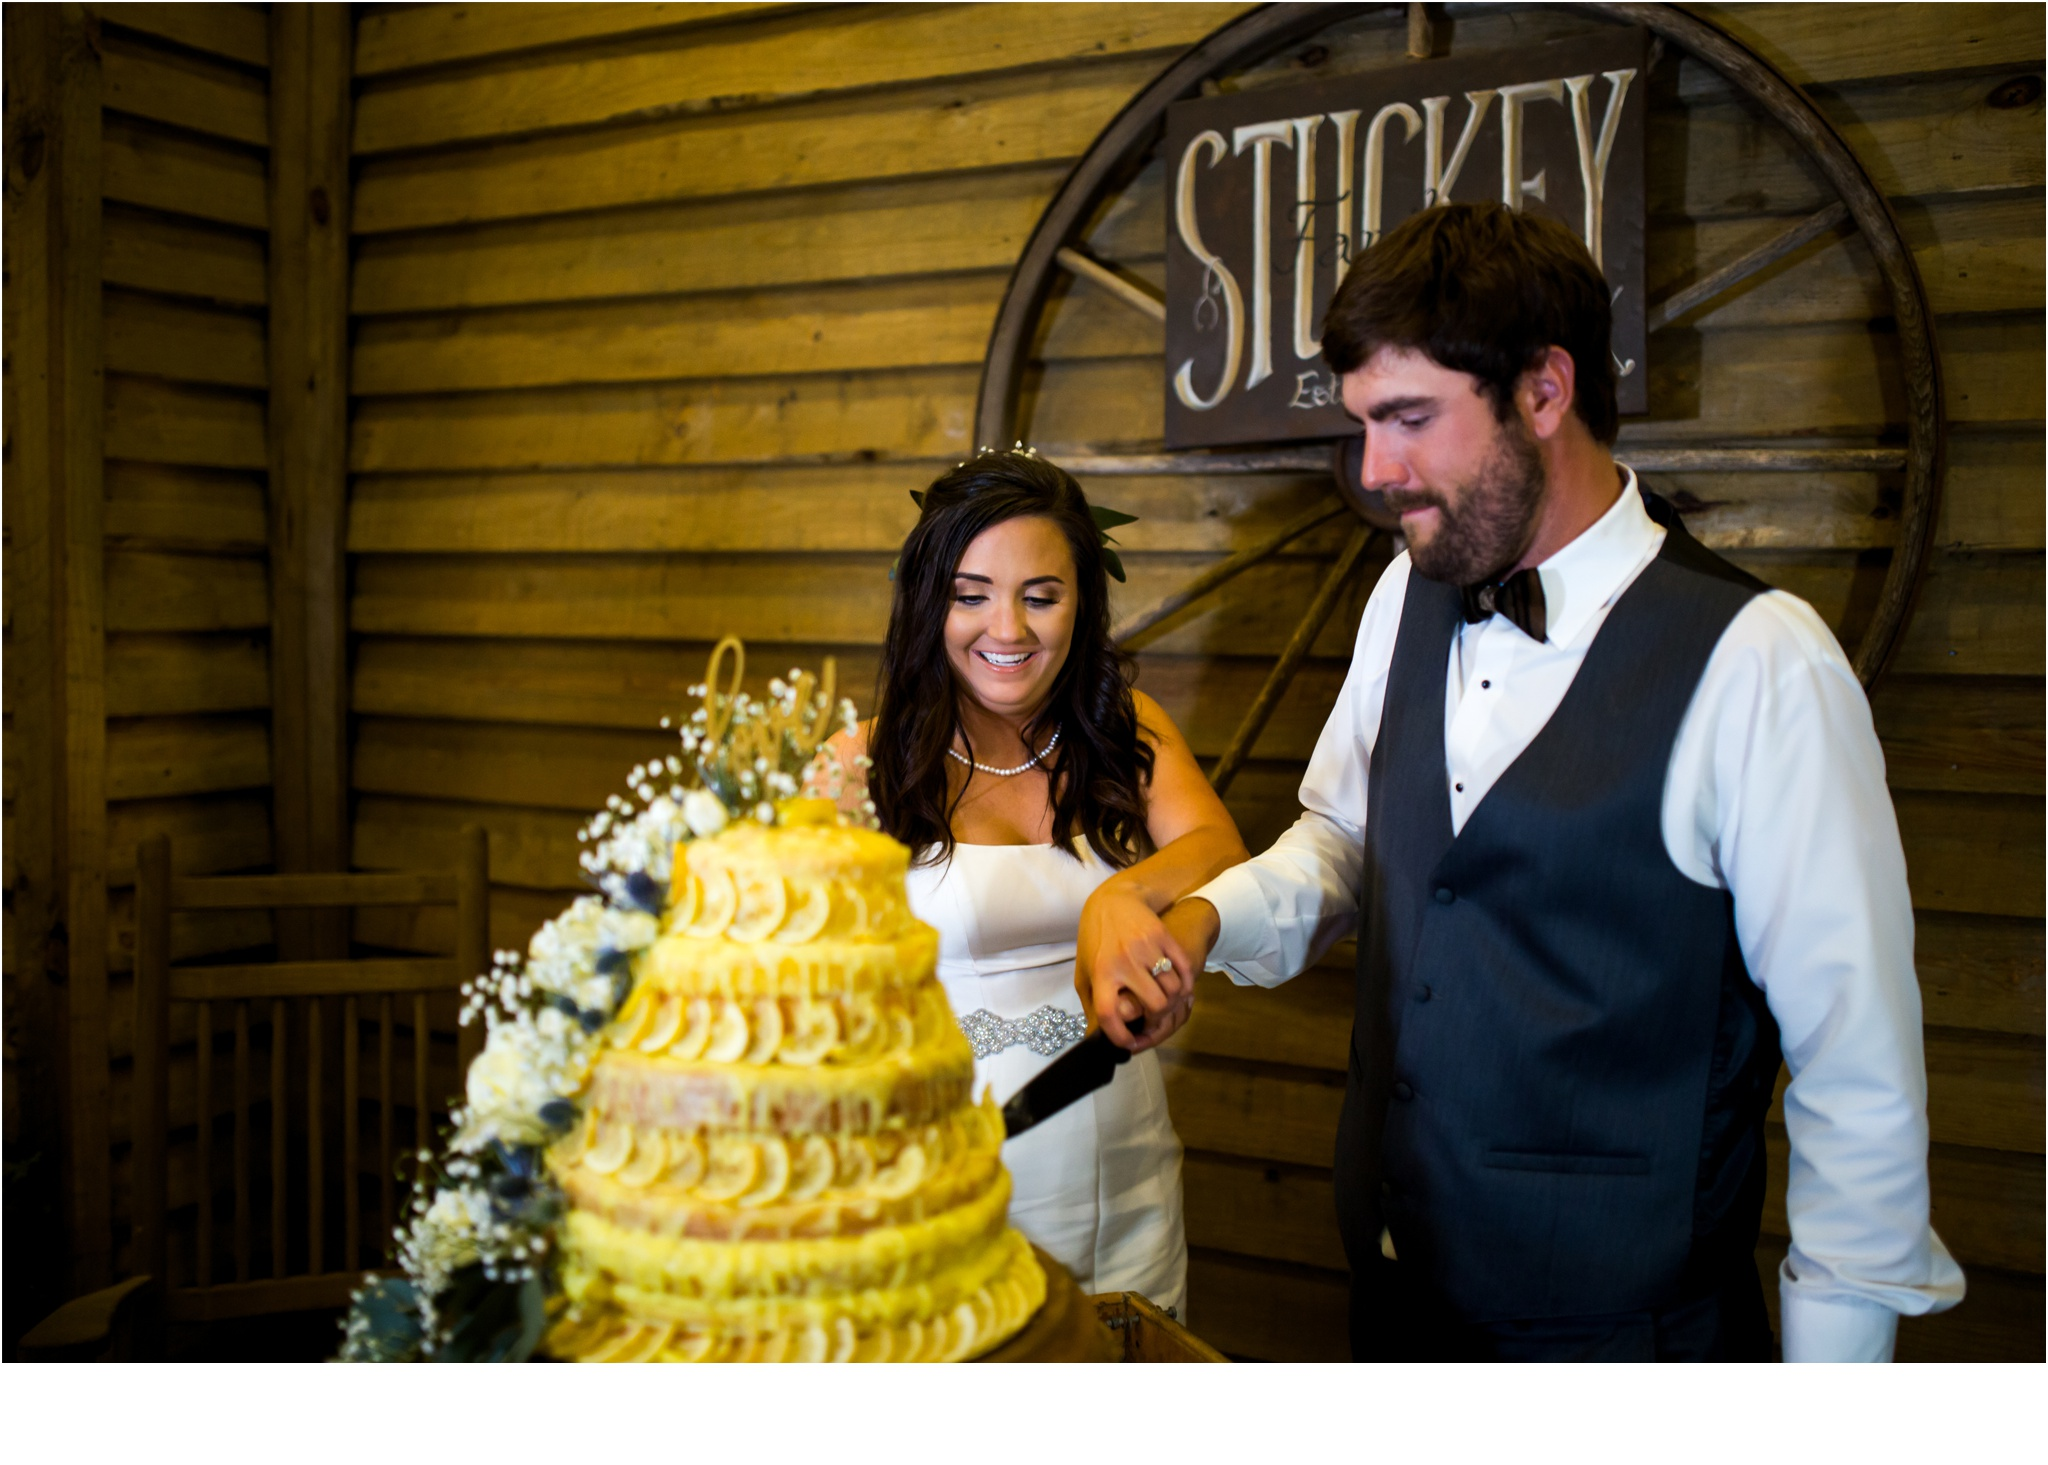 Rainey_Gregg_Photography_St._Simons_Island_Georgia_California_Wedding_Portrait_Photography_0981.jpg